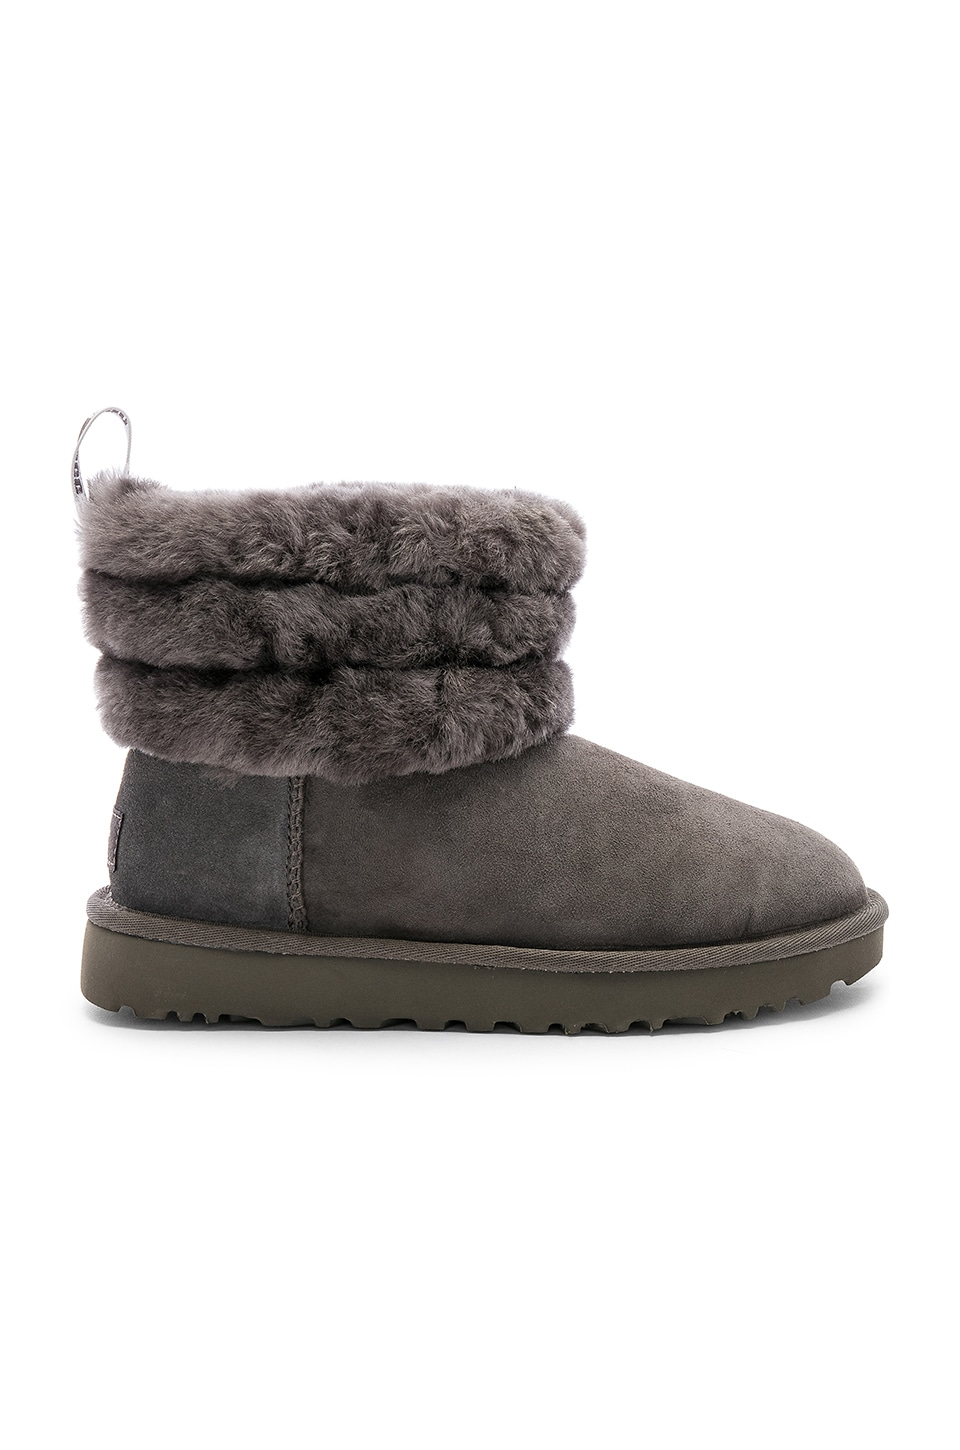 UGG Fluff Mini Quilted Bootie in Charcoal